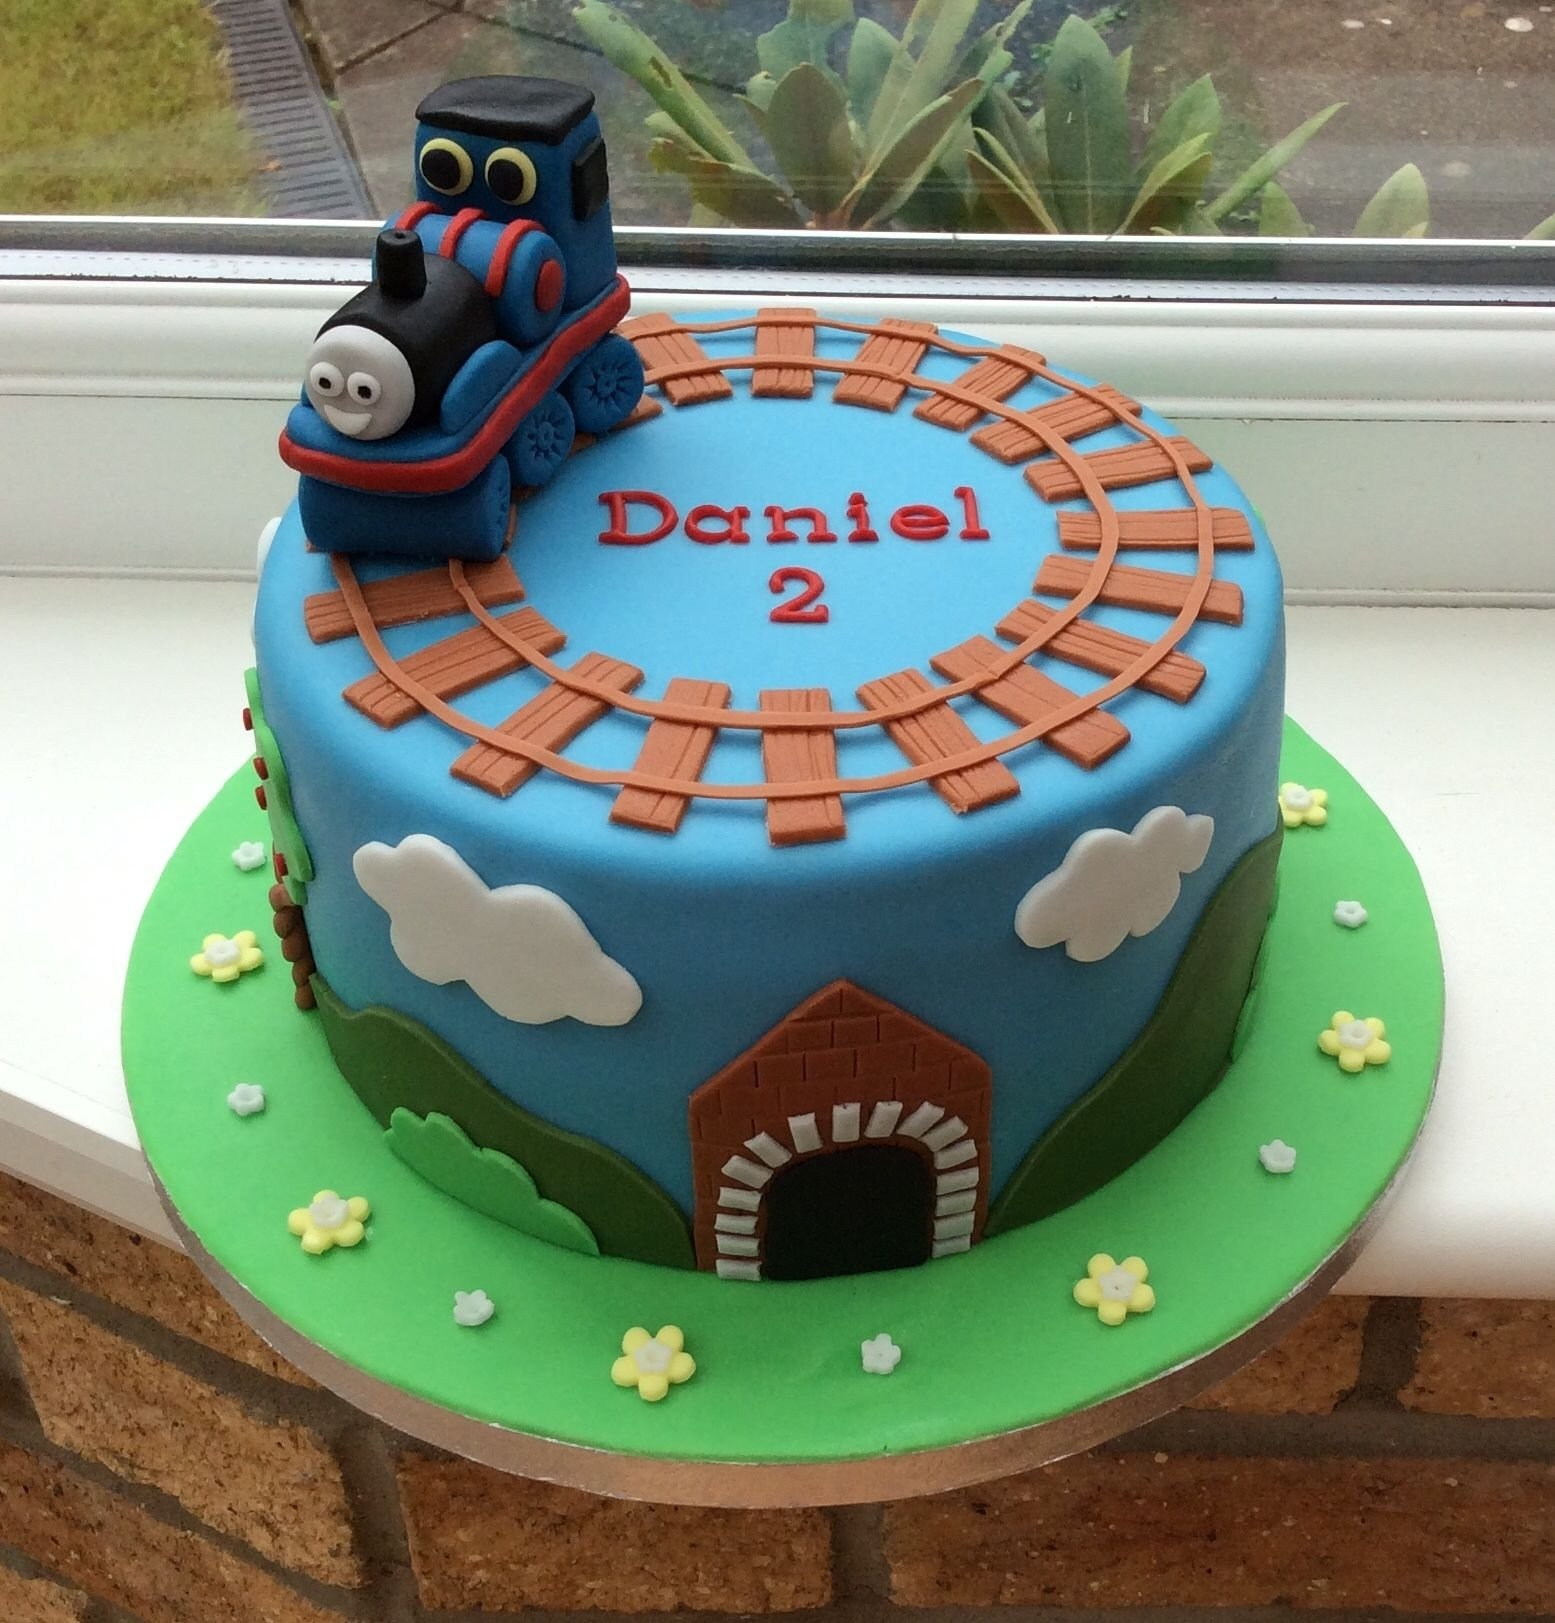 thomas cakeinstead of a fondant thomas, i'd just put a toy thomas